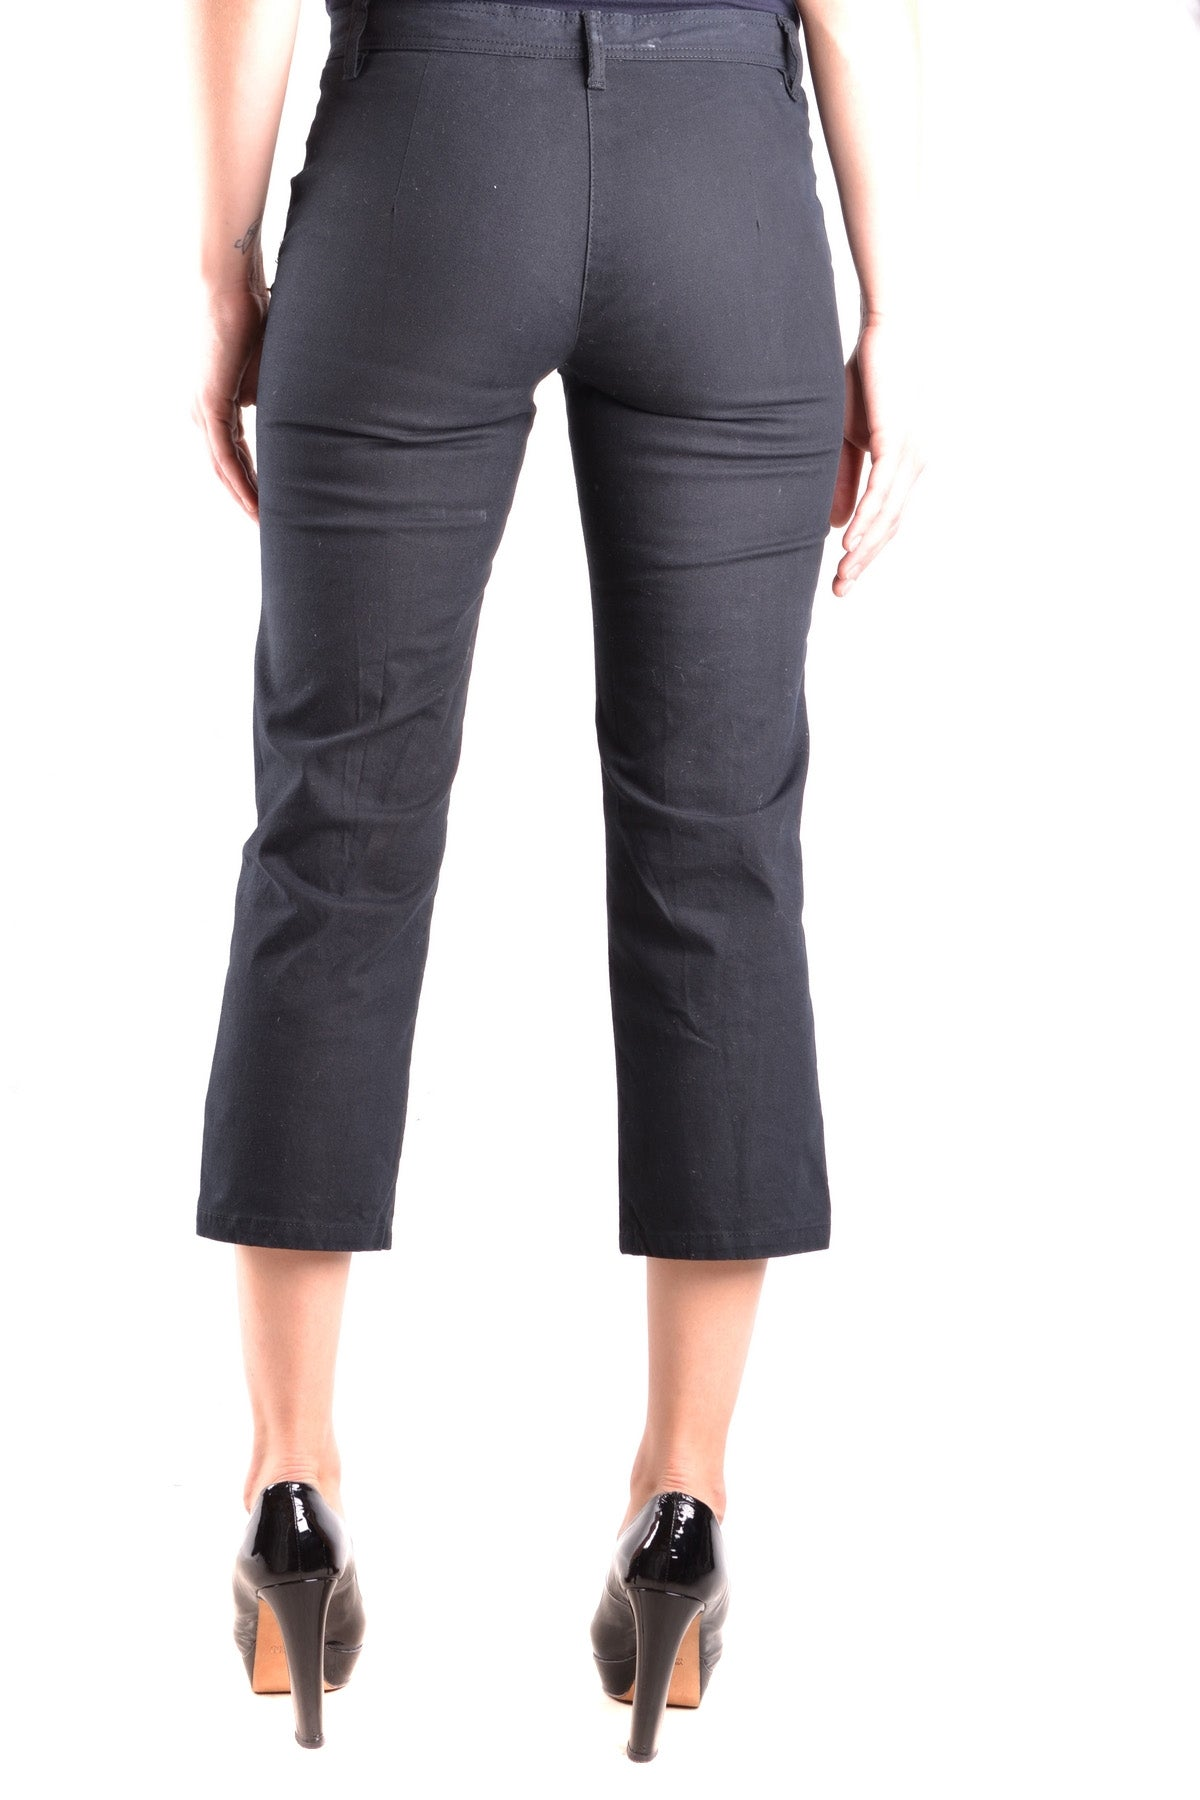 Trousers Moschino Jeans-Trousers - WOMAN-Product Details Terms: New With LabelYear: 2017Main Color: BlackGender: WomanMade In: RomaniaSize: ItSeason: Spring / SummerClothing Type: TrousersComposition: Cotton 98%, Elastane 2%-Keyomi-Sook